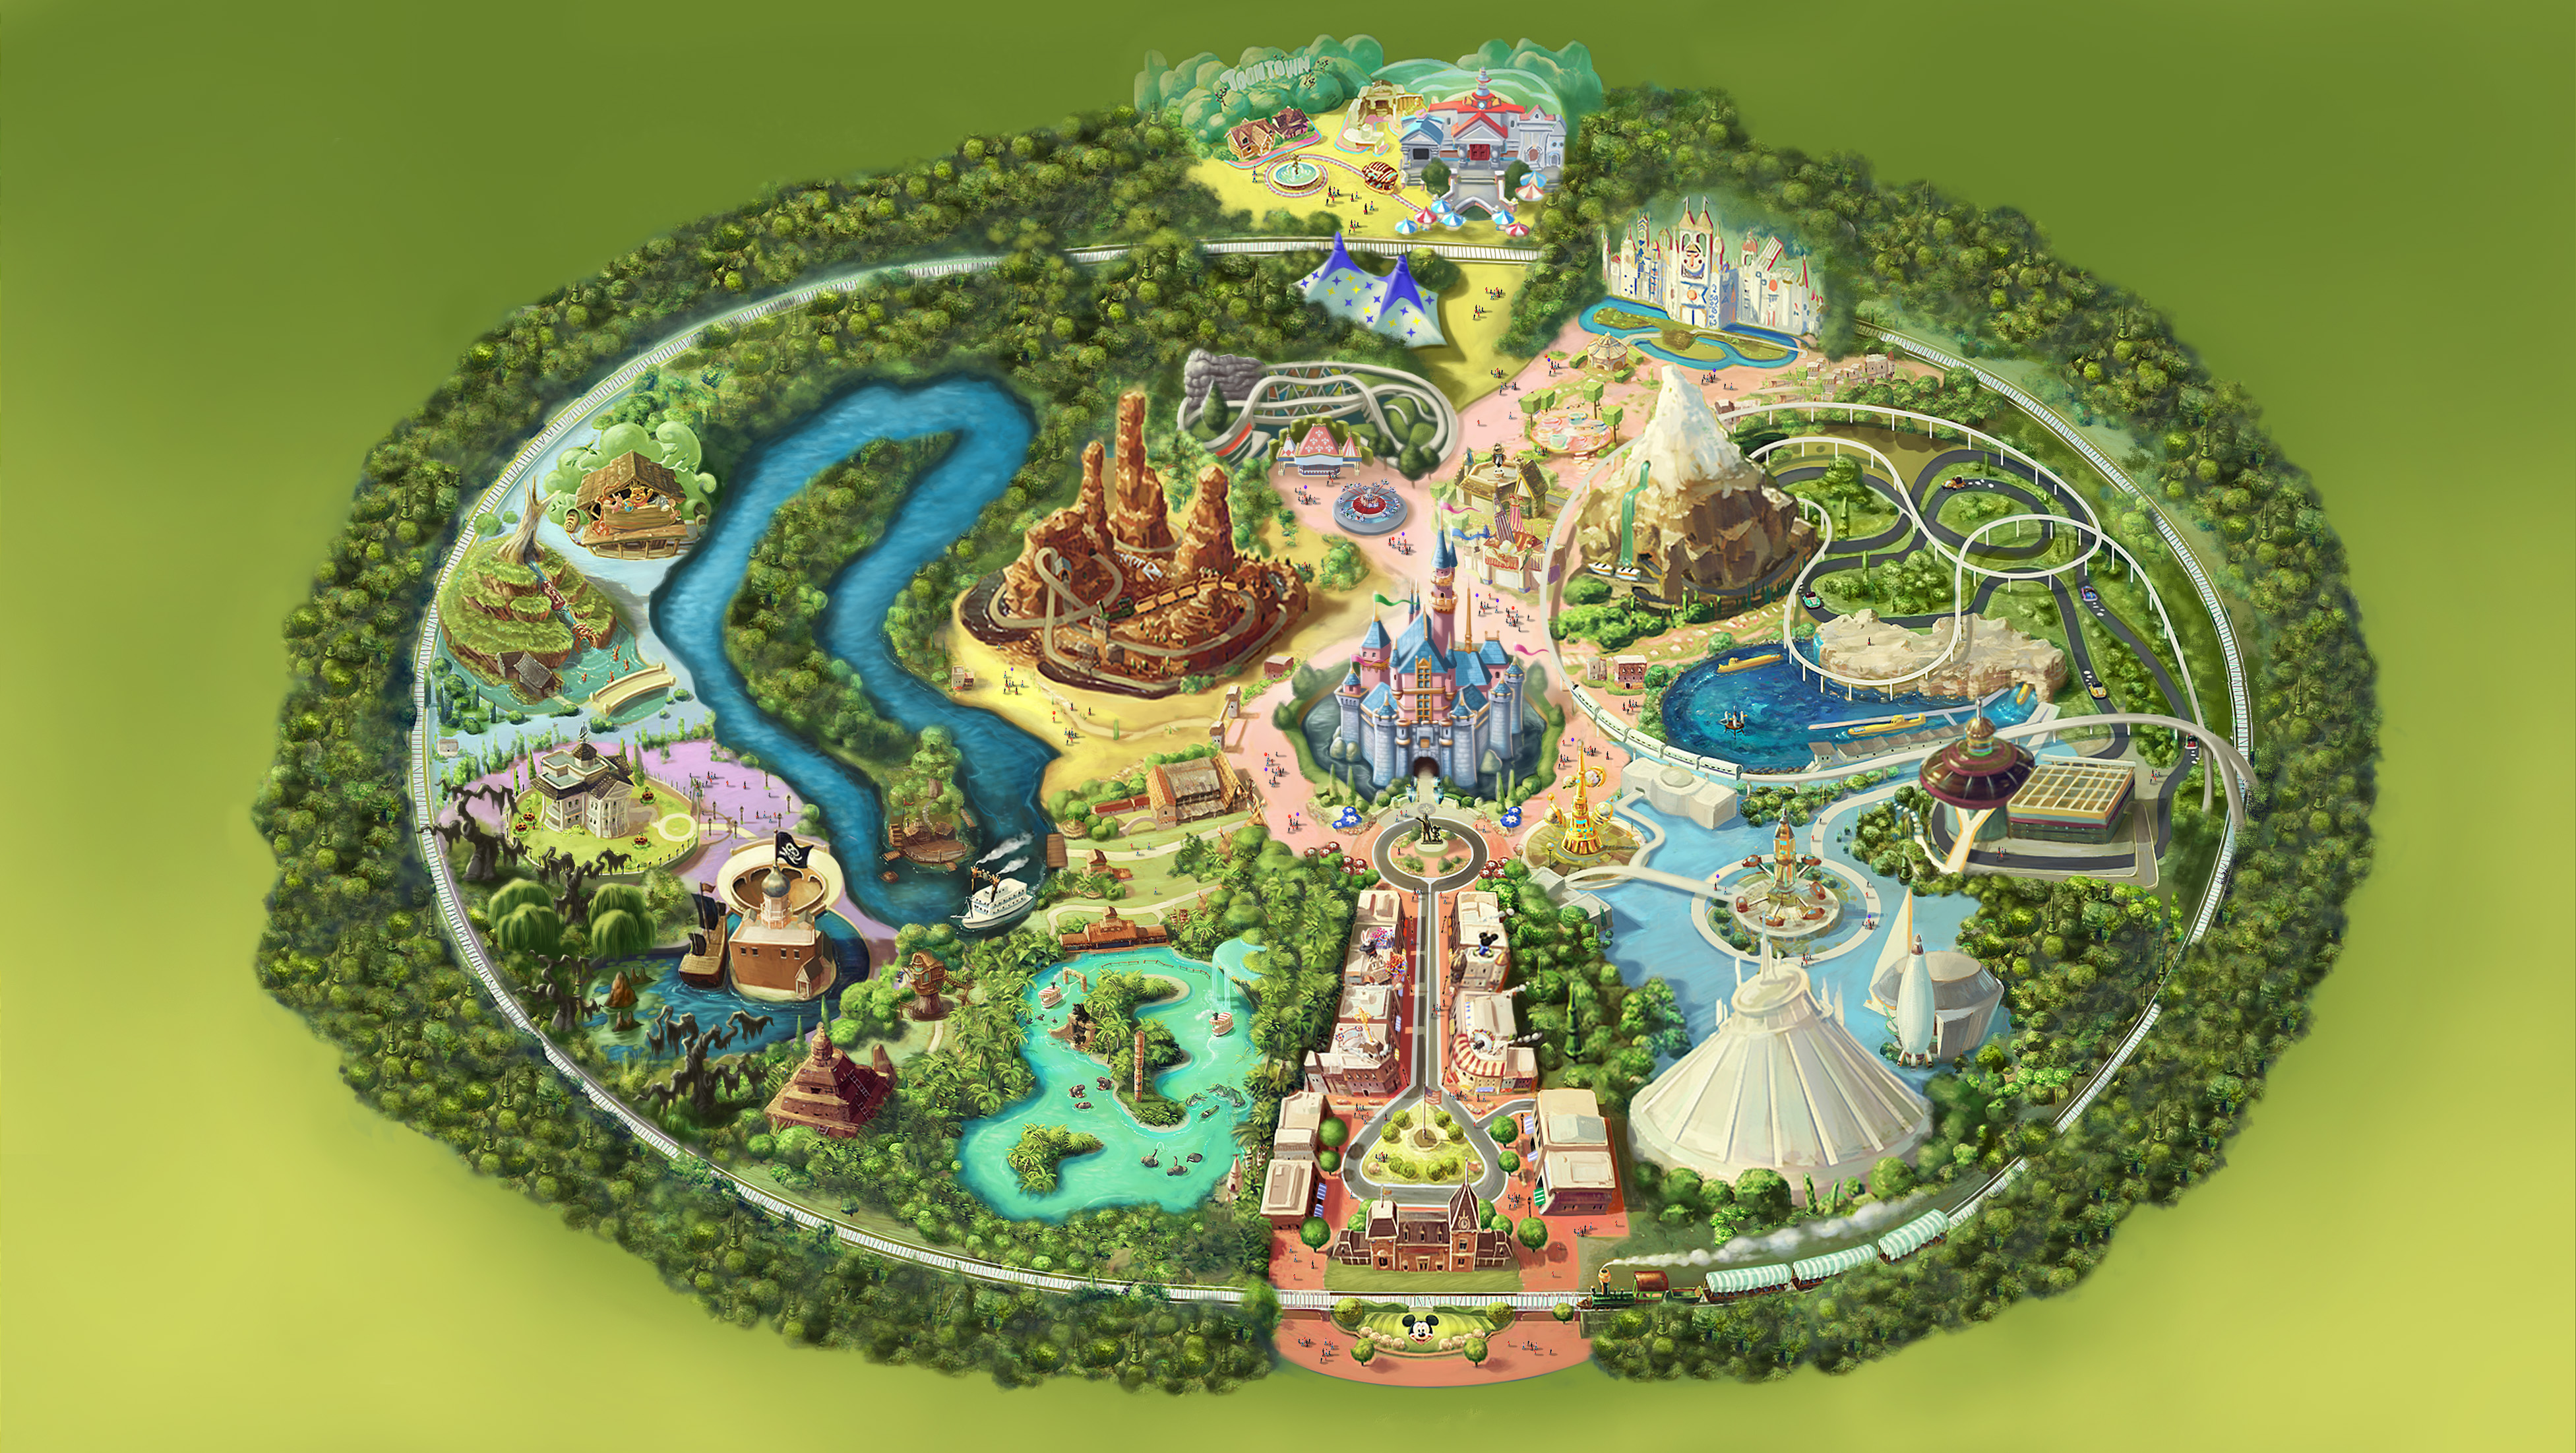 Kinect: Disneyland Adventures park map